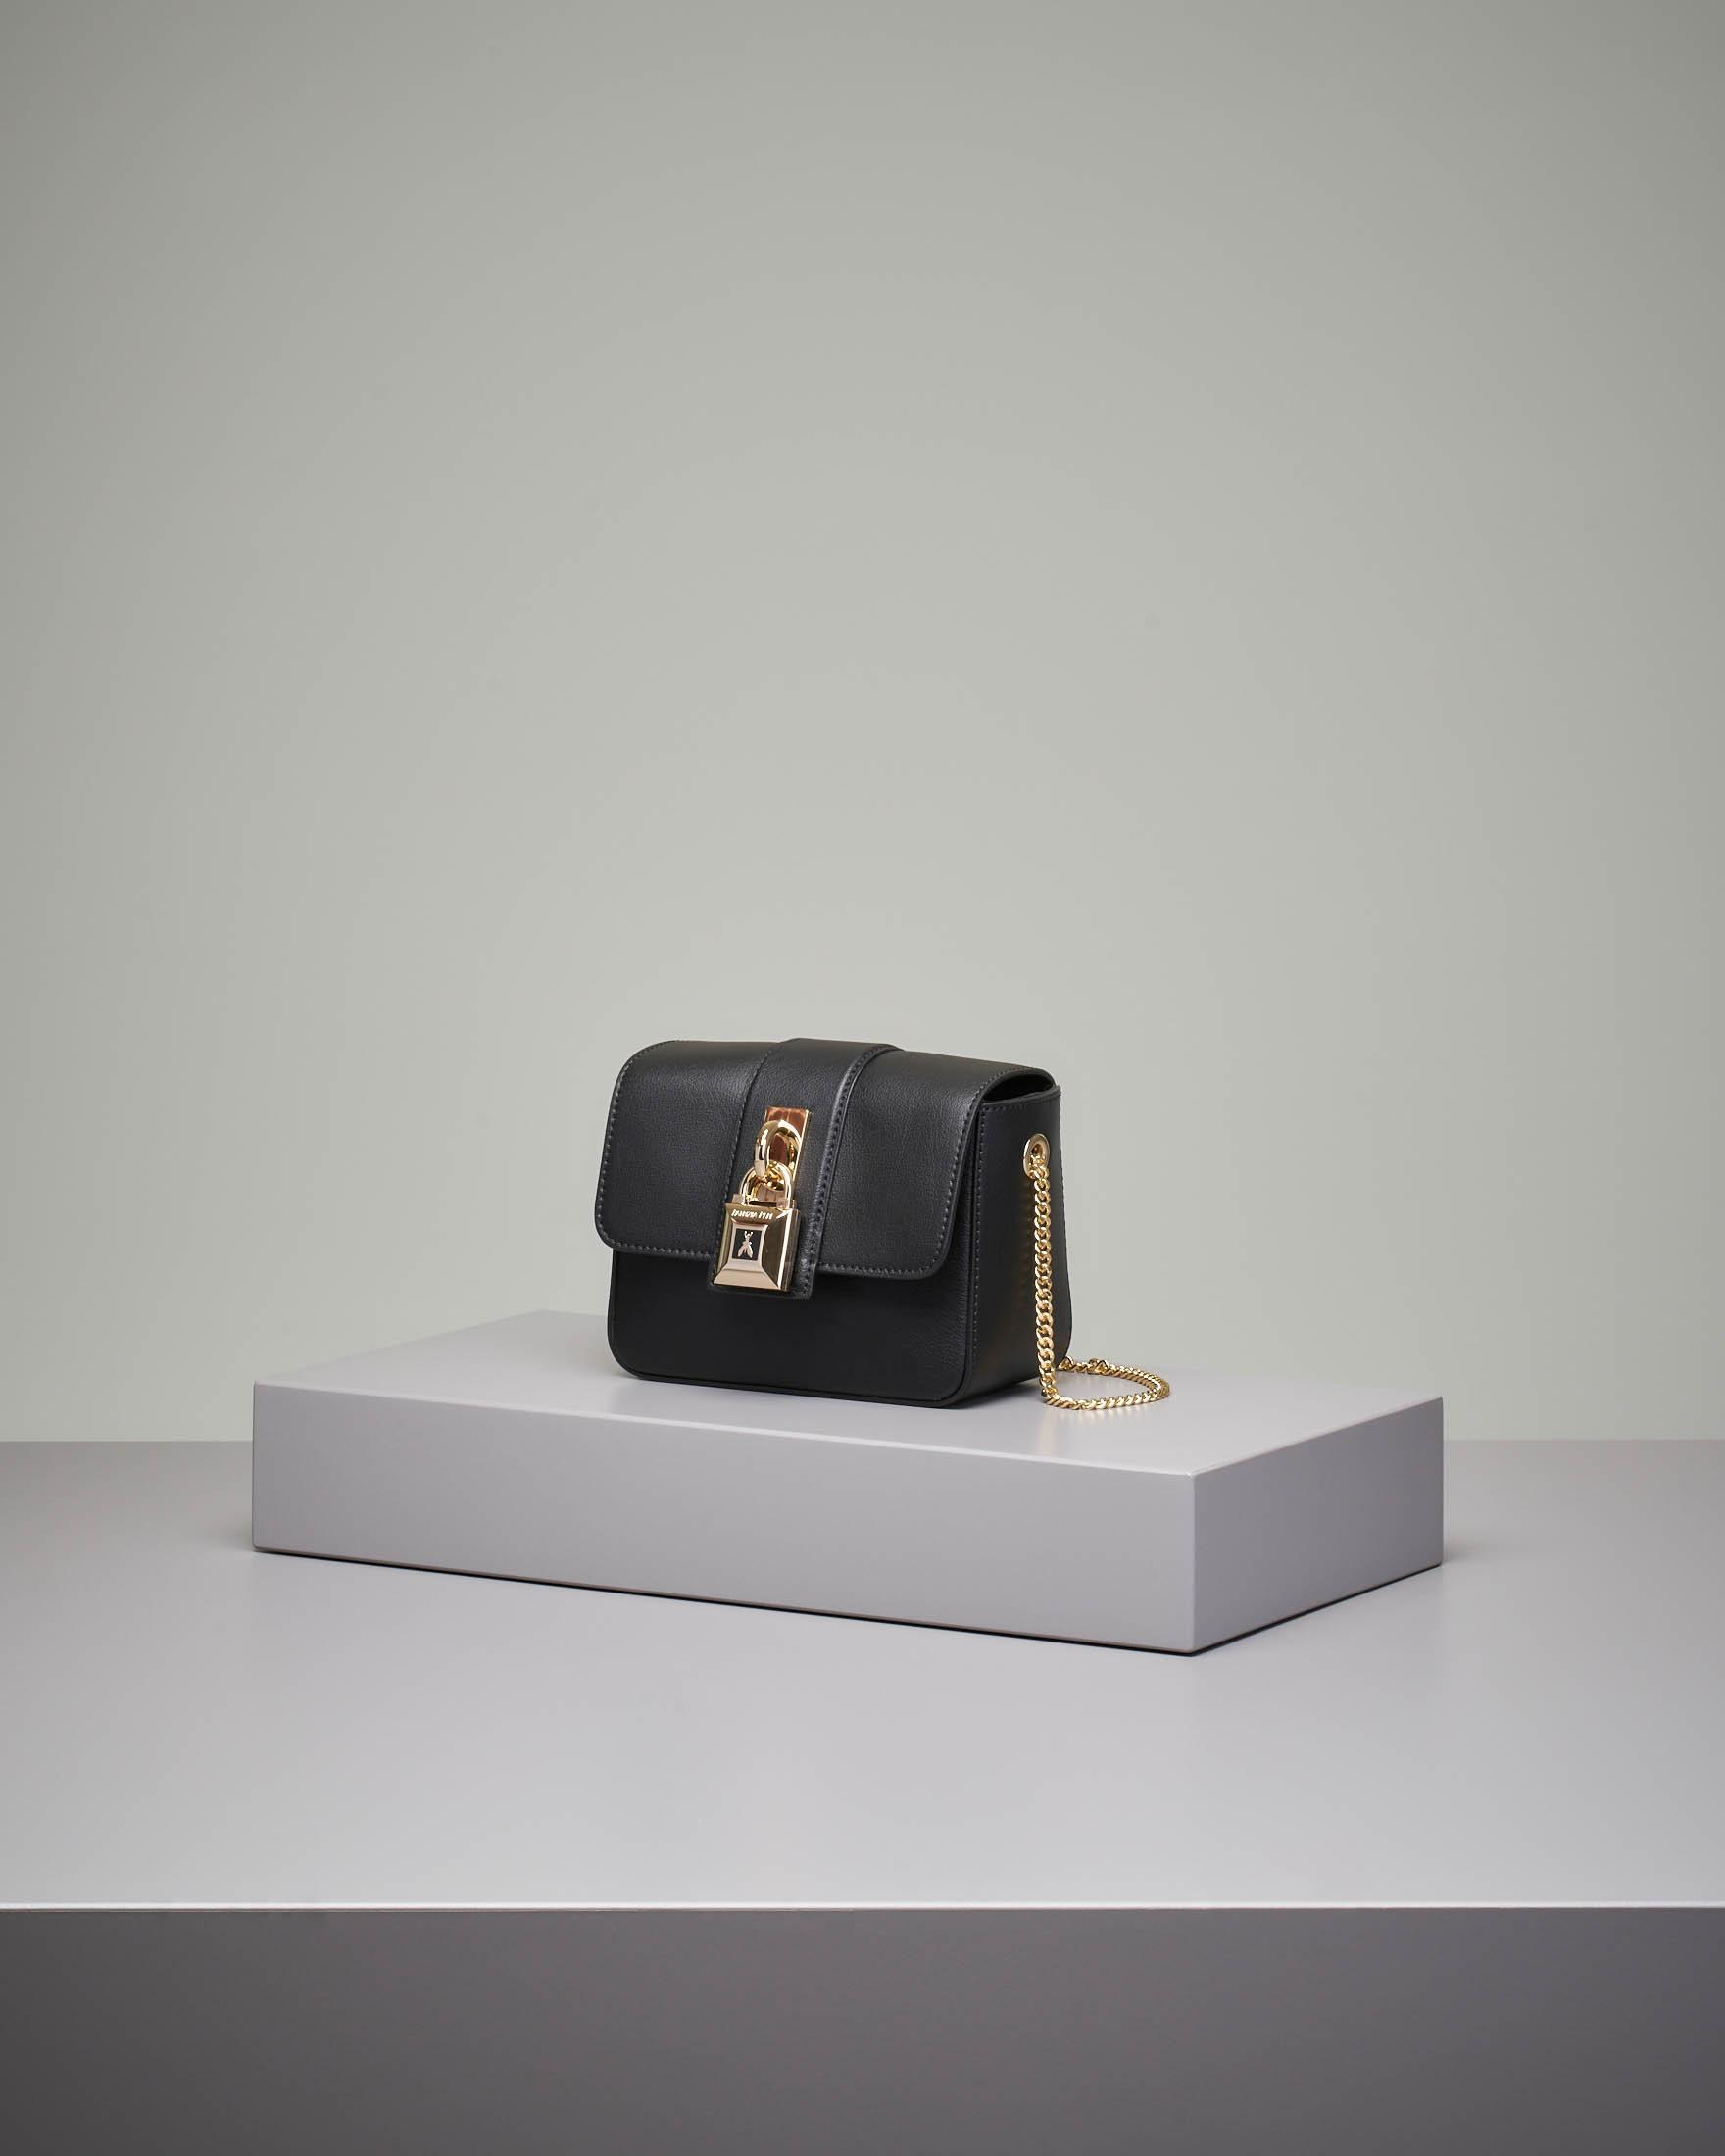 Cross bag mini in pelle nera con catena